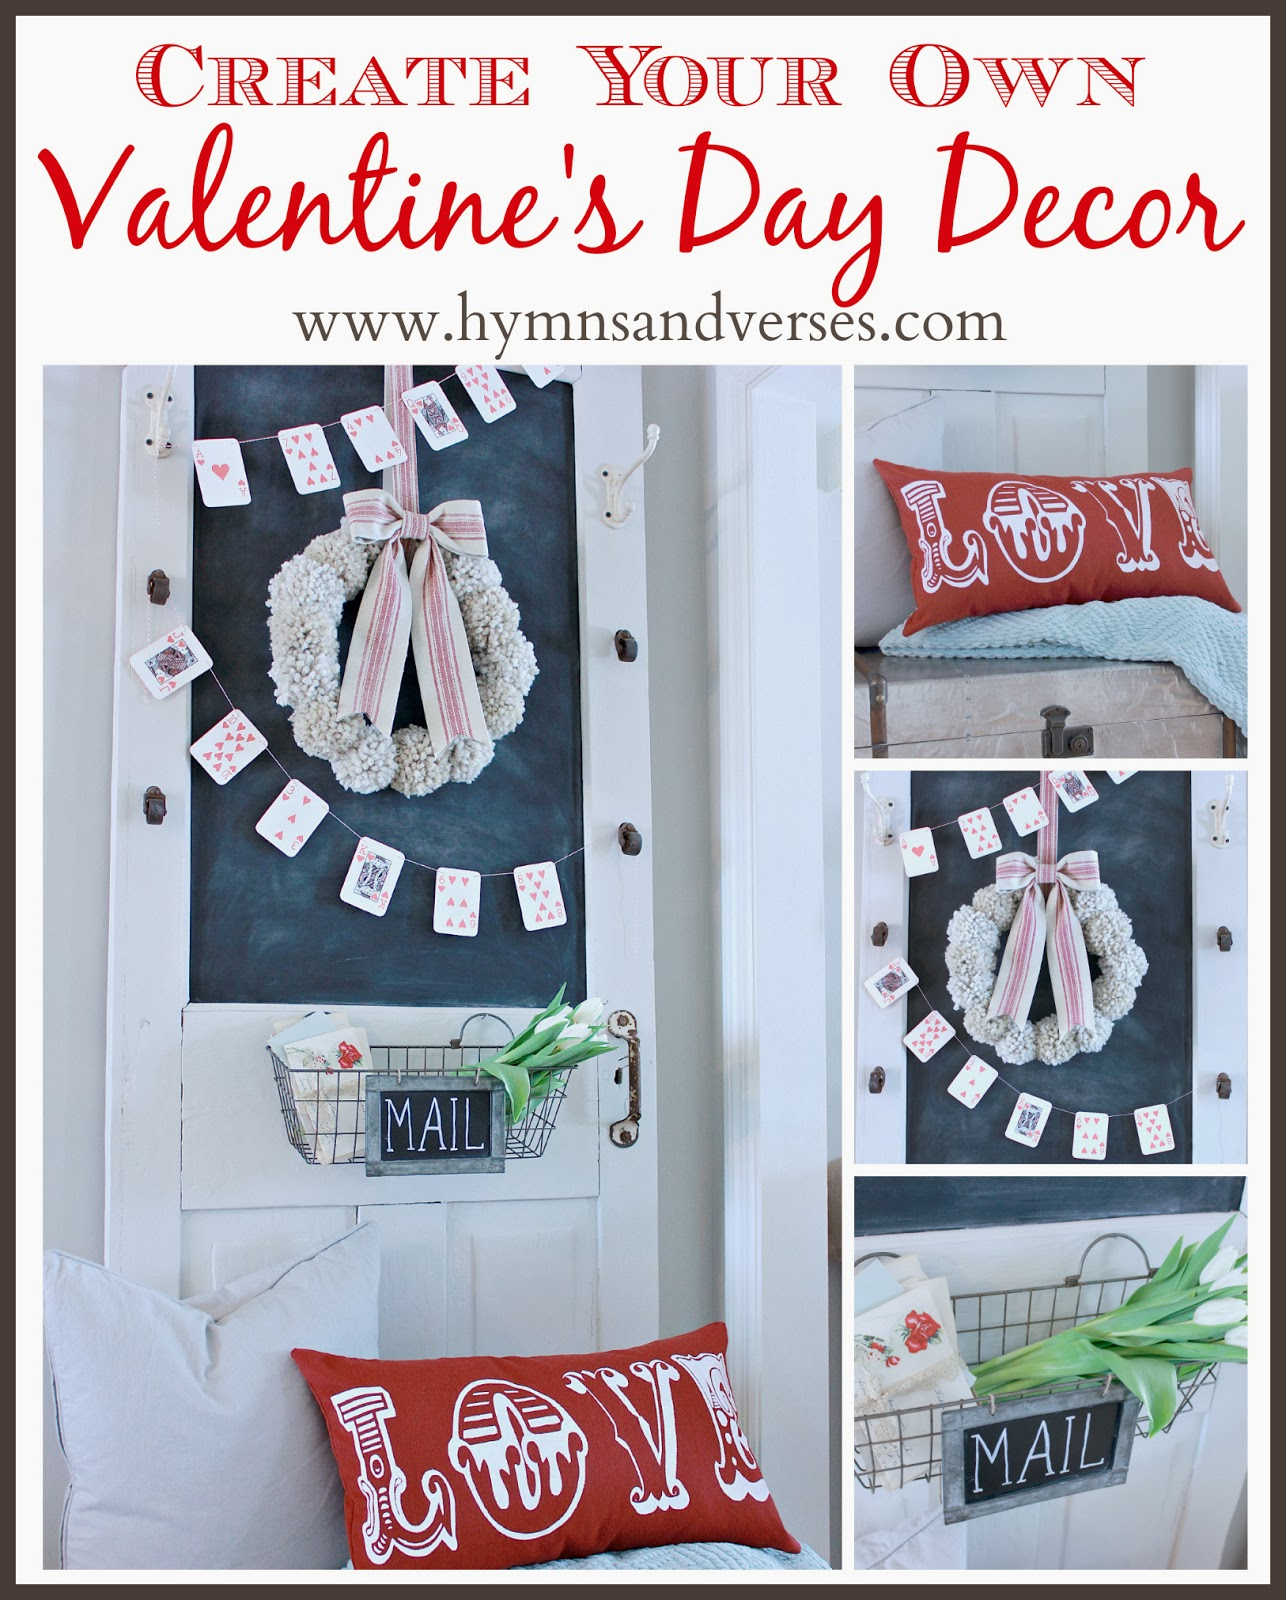 Hymns And Verses Create Your Own Valentine 39 S Day Decor